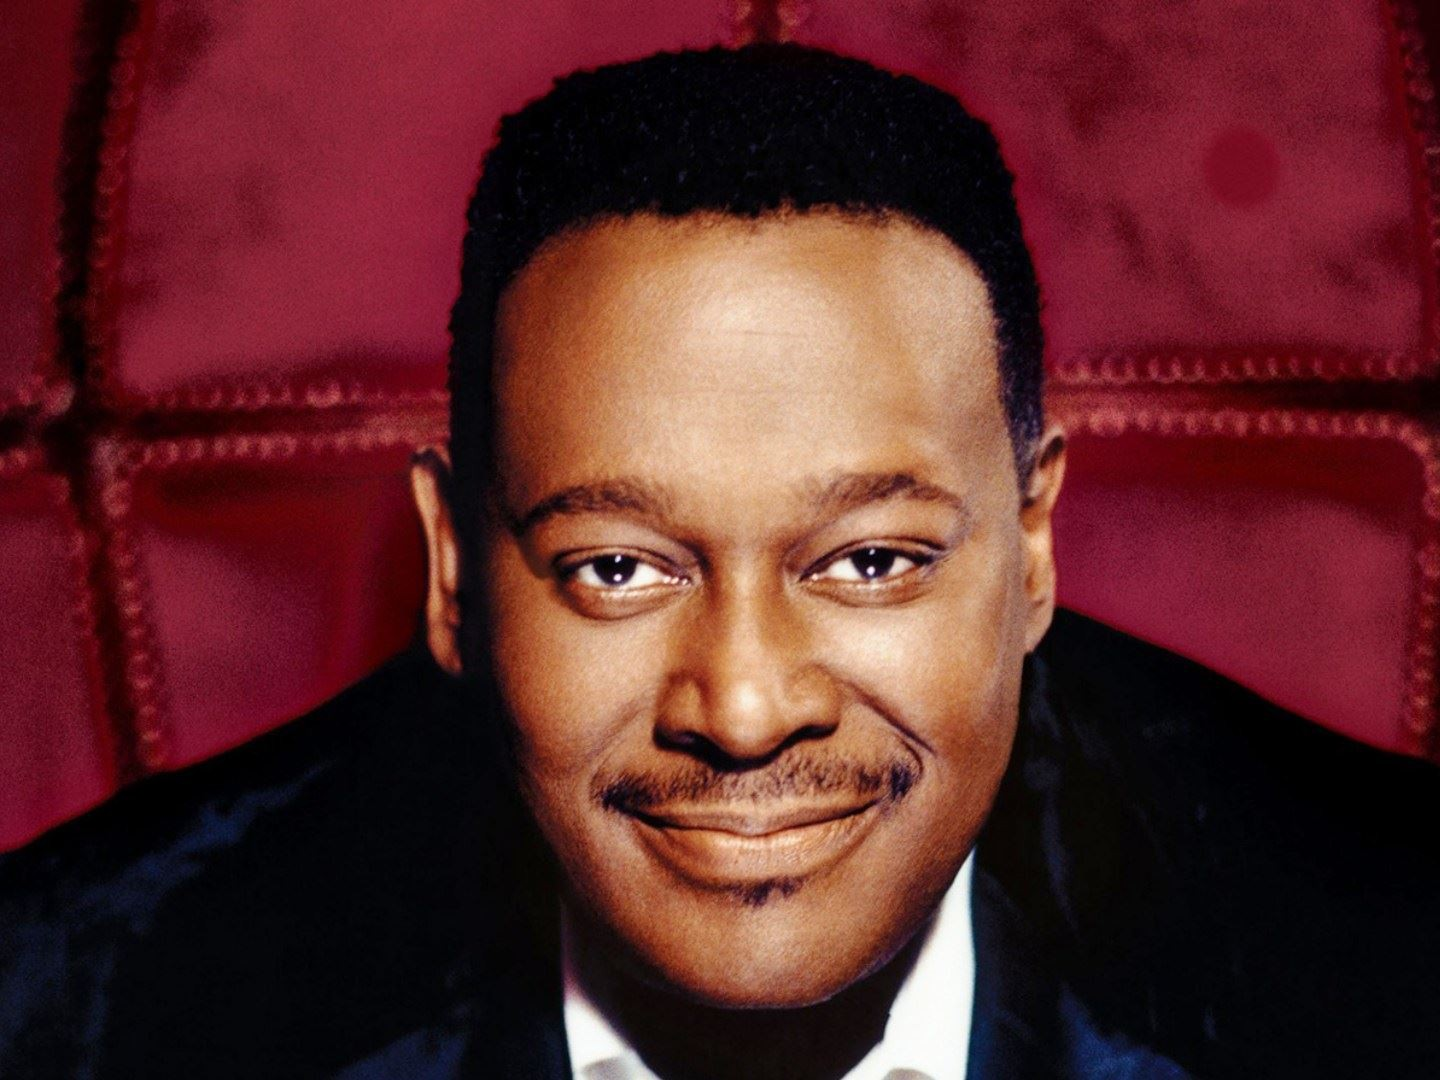 LutherVandross_smiling